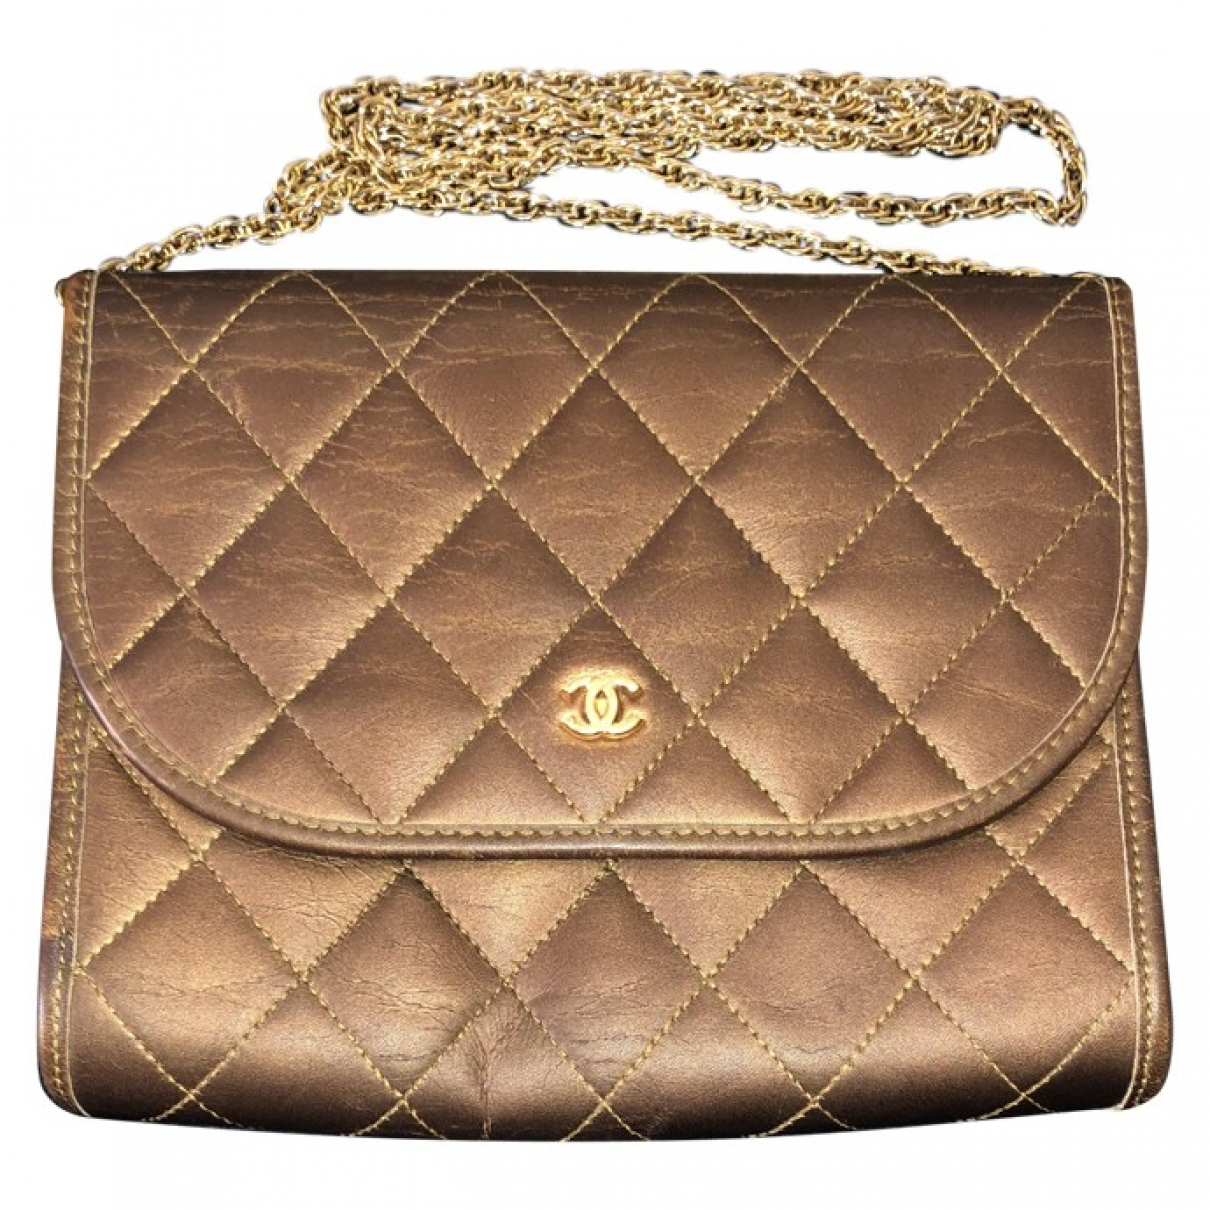 Chanel Wallet on Chain Gold Leather Clutch bag for Women \N